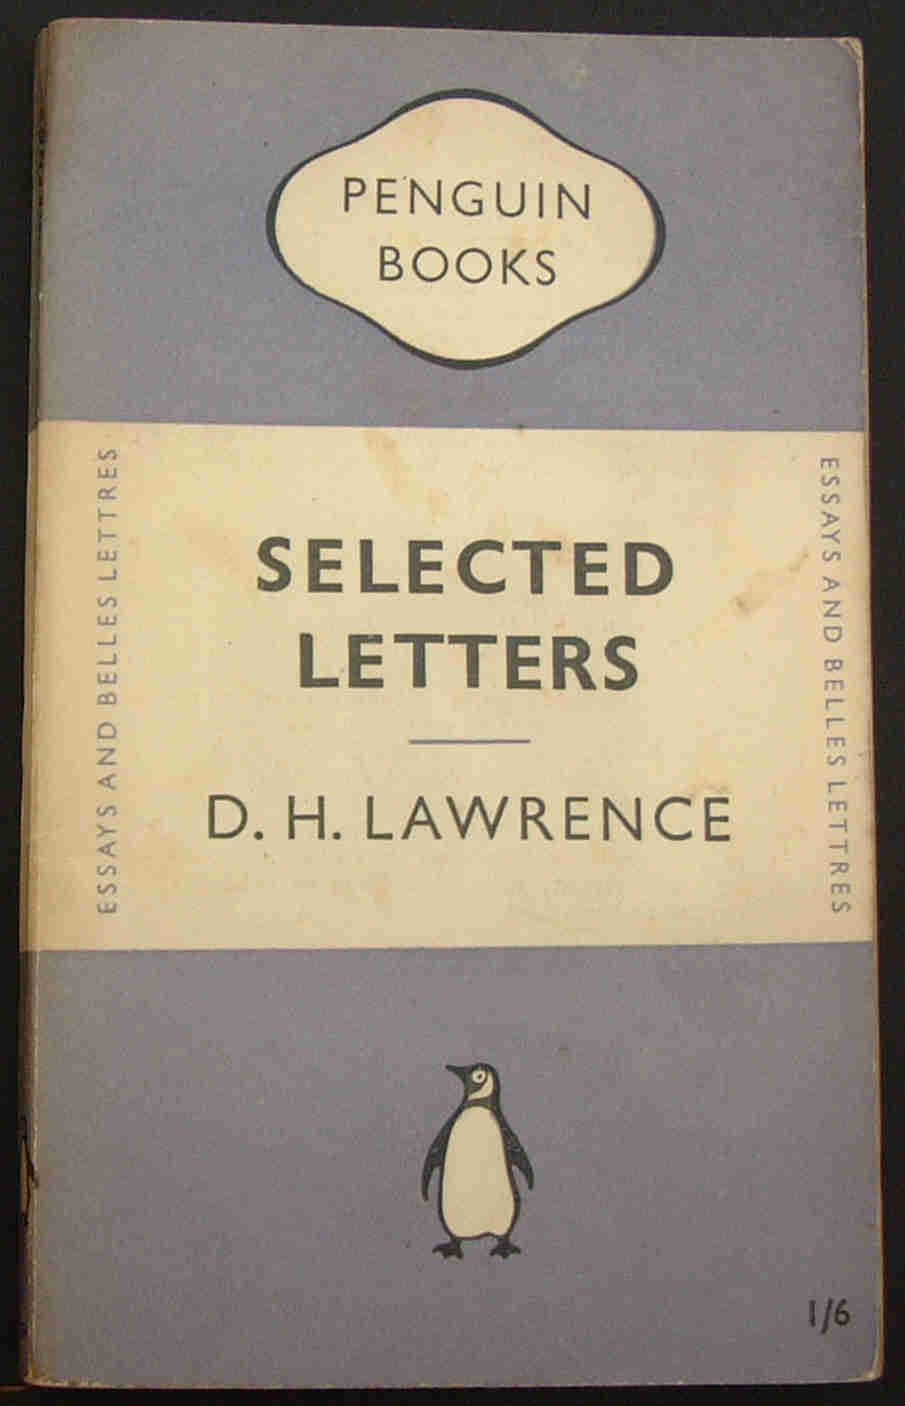 the early works of david herbert lawrence Some or all works by this author are in the public domain in the united states because they were published before january 1, 1923.